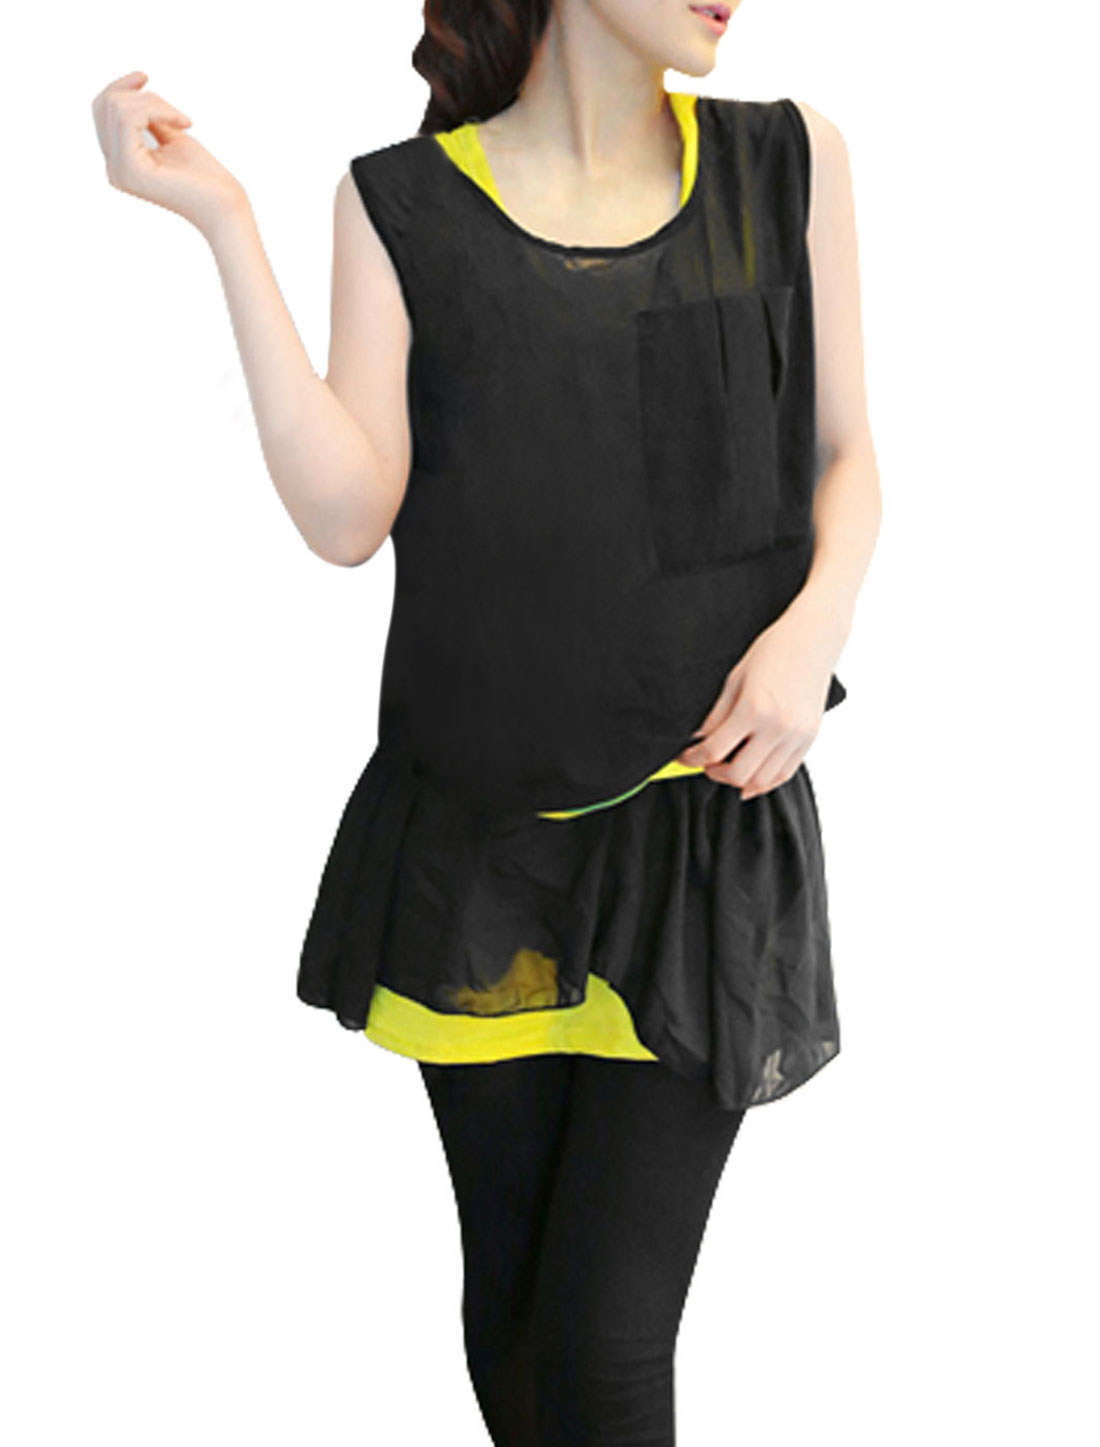 Ladies Pullover Smock & Sleeveless Stretchy Tank Top Black Yellow XS